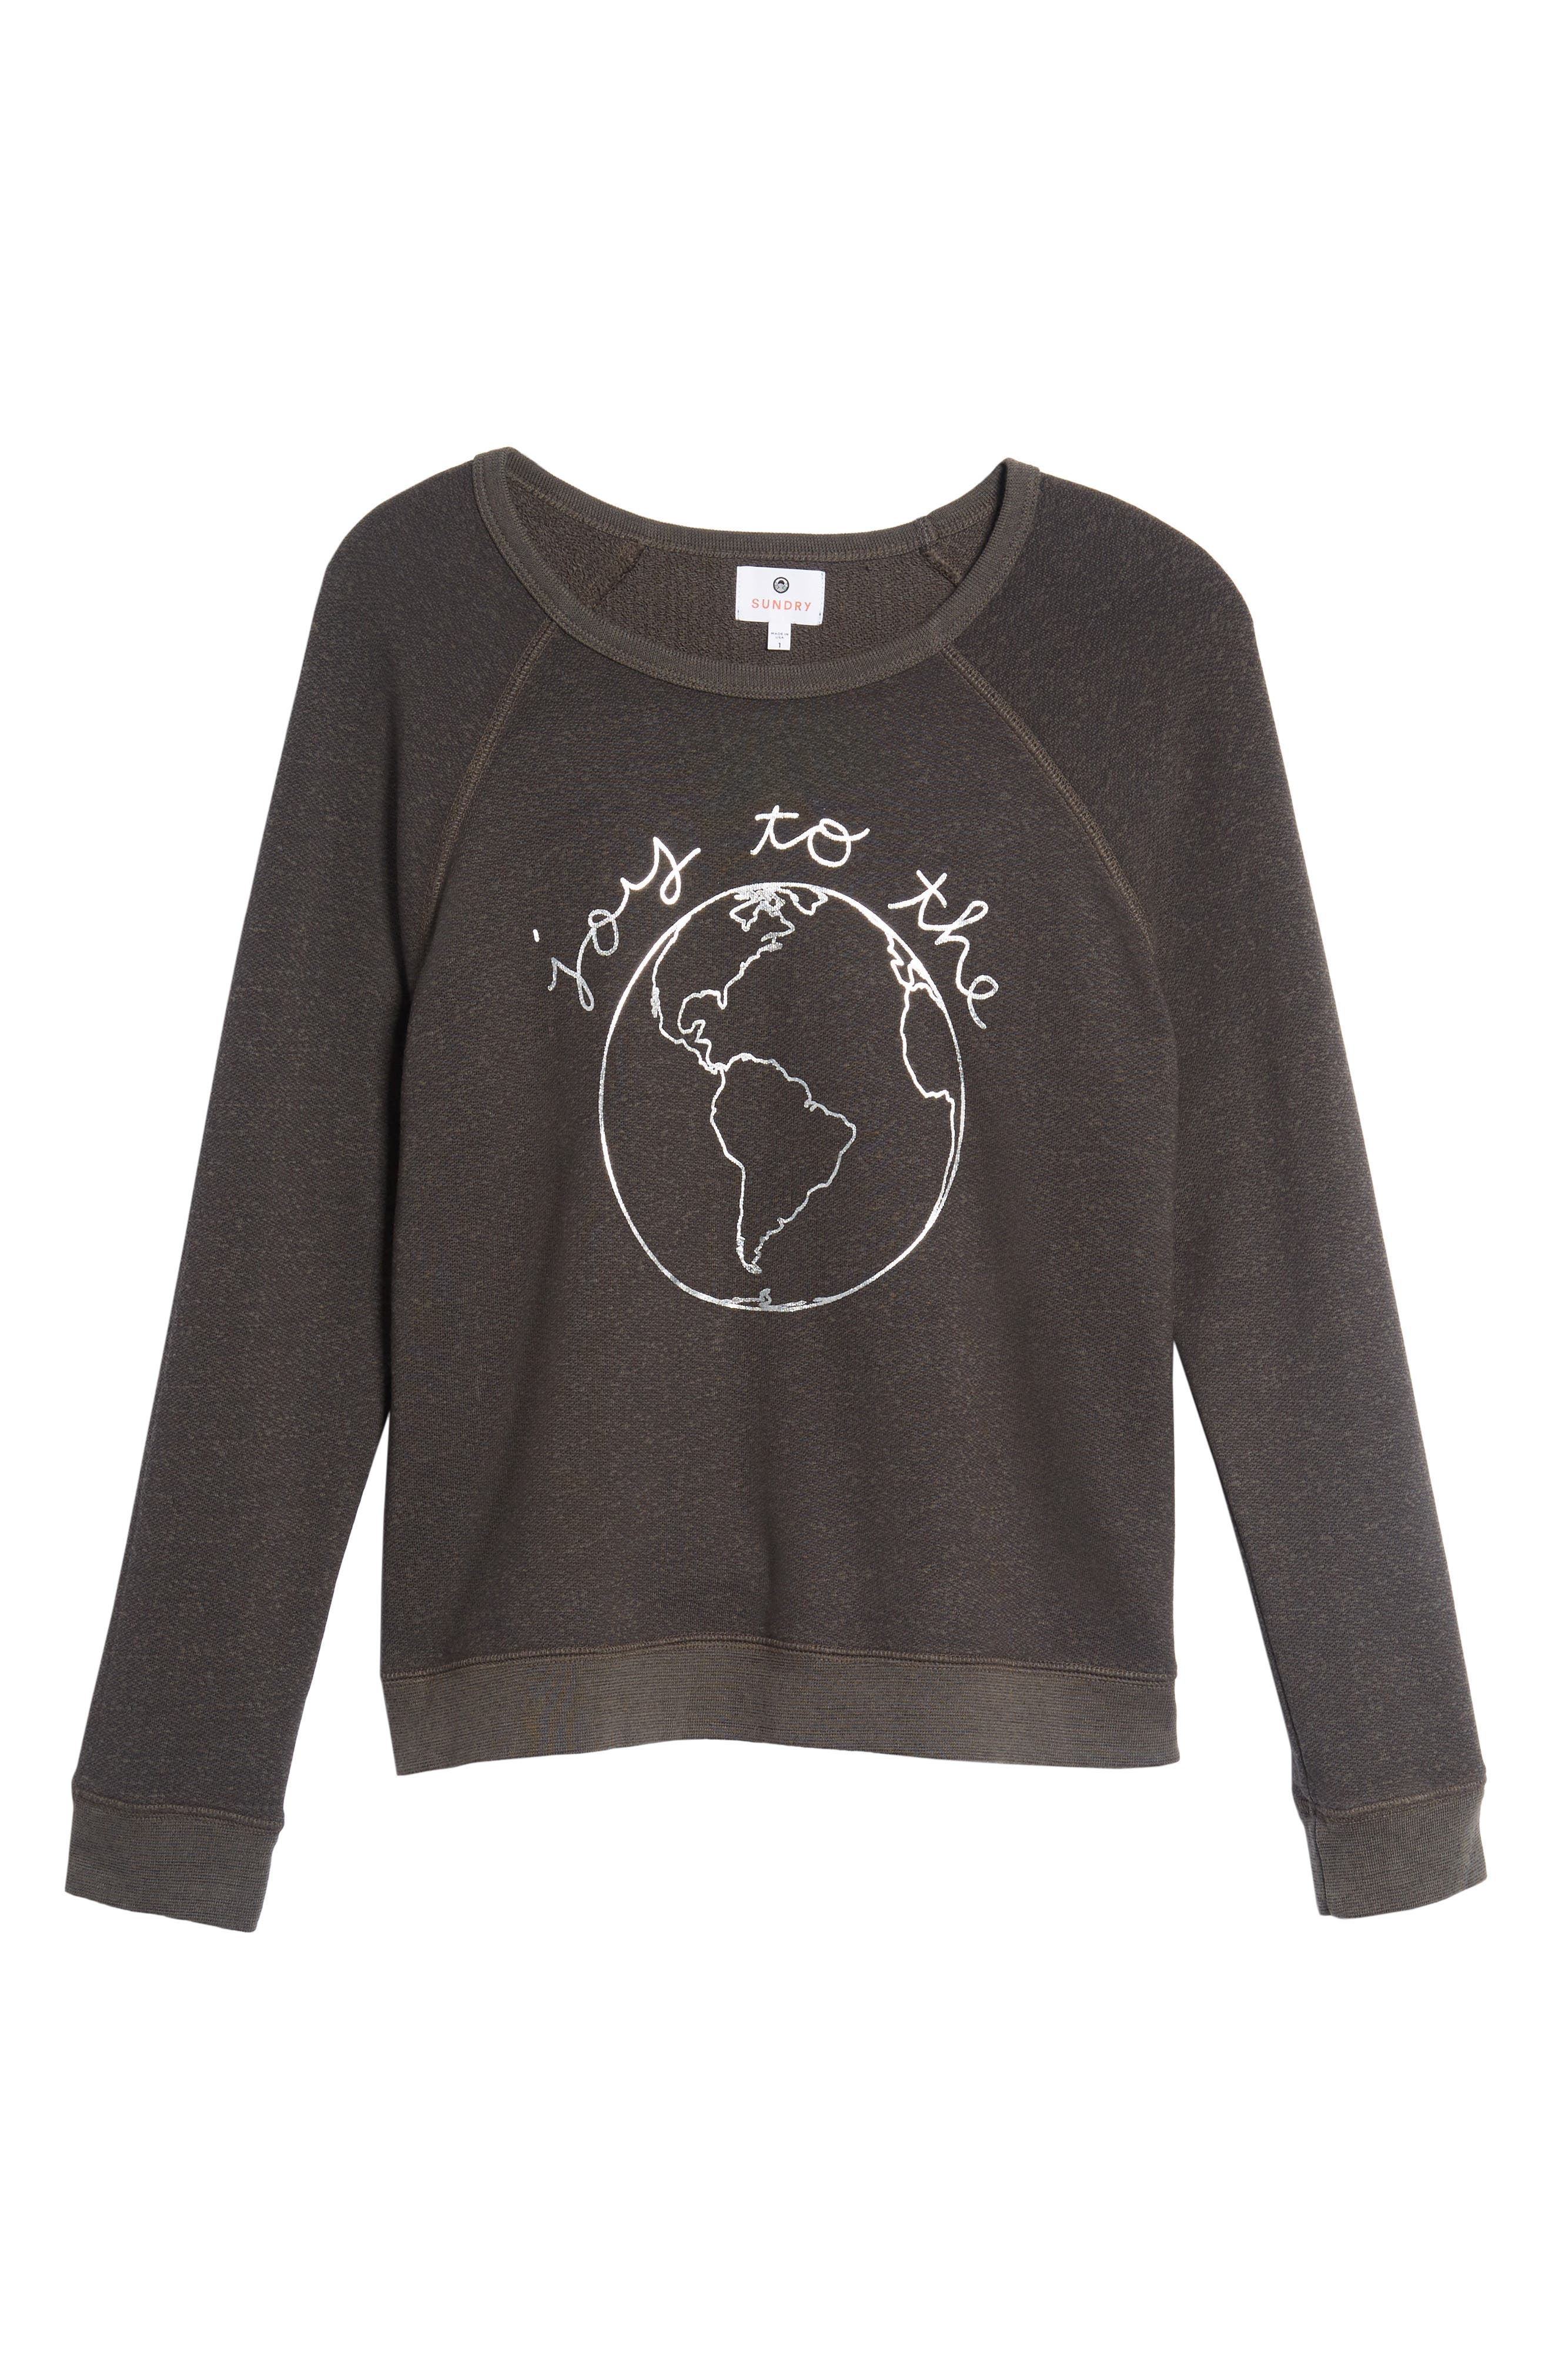 Joy to the World Sweatshirt,                             Alternate thumbnail 6, color,